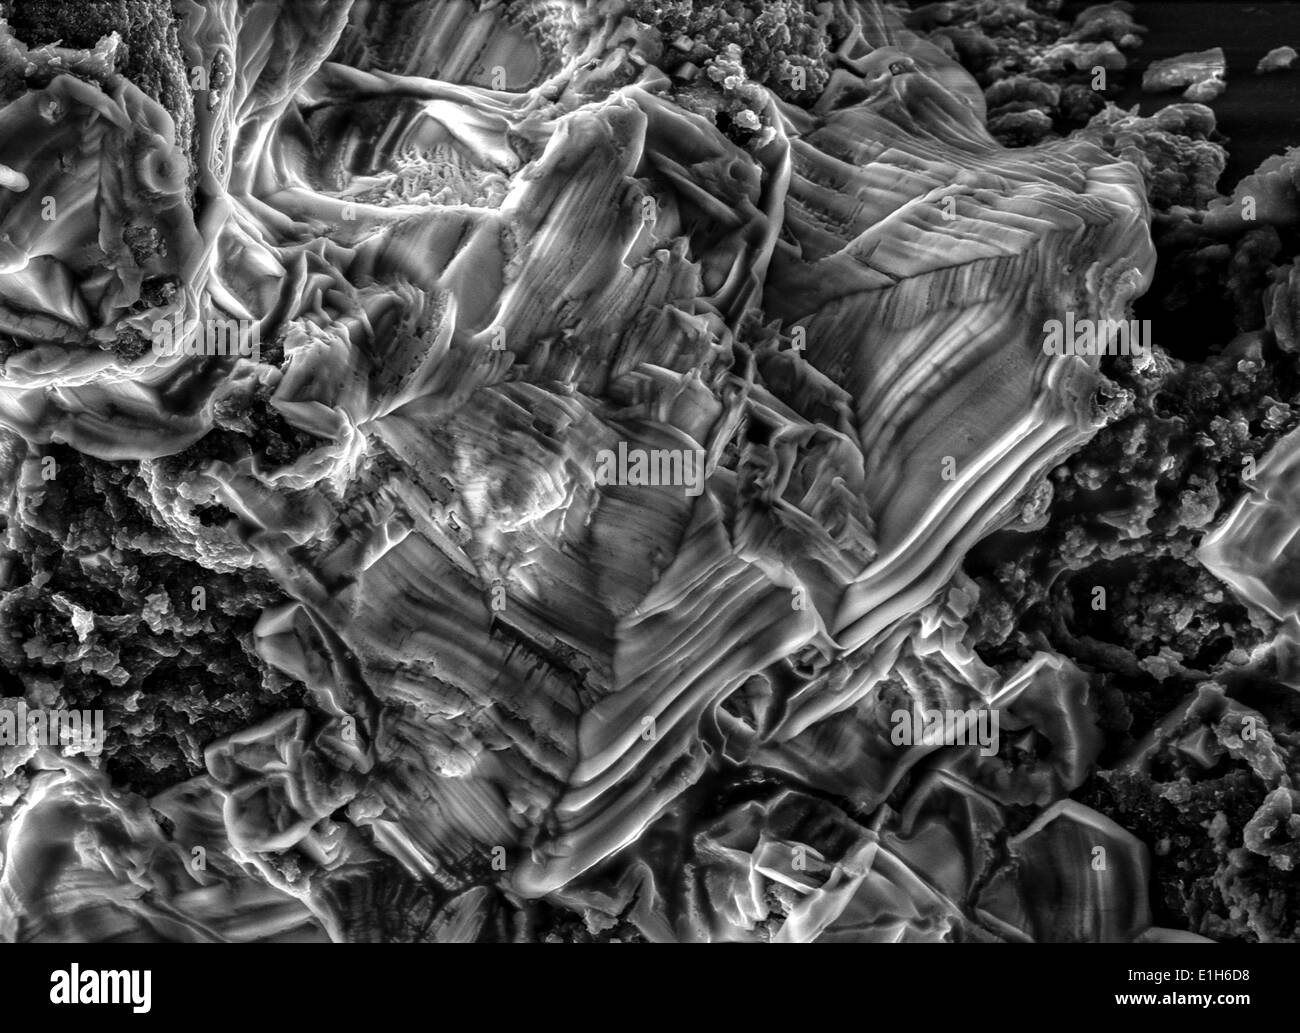 Scanning electron micrograph image of iron oxide formations with chlorine and sulphur present Stock Photo